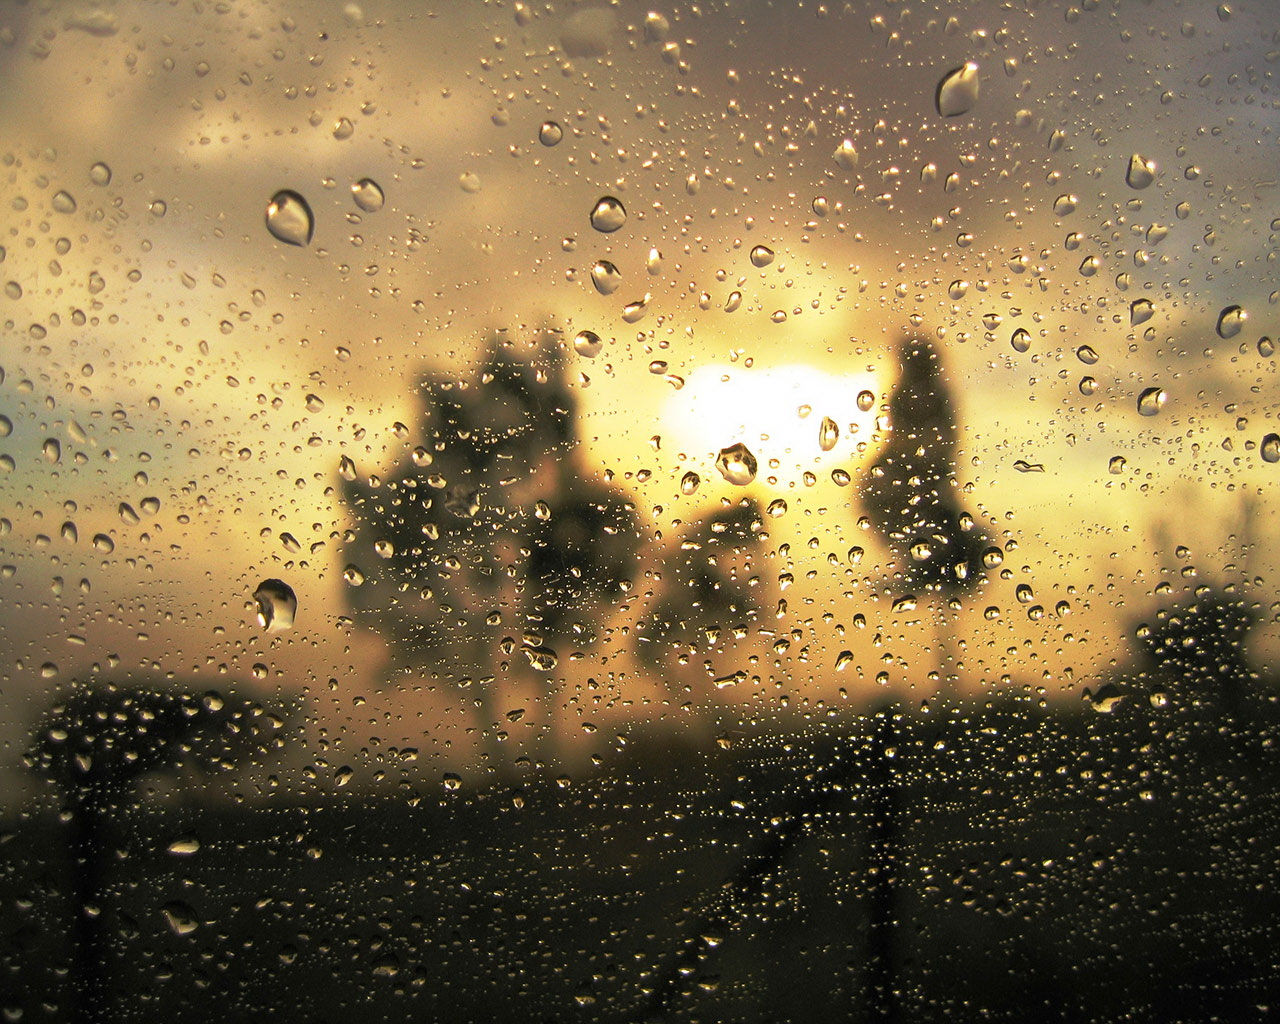 Rainy Day Free Desktop Wallpapers For Widescreen Hd And